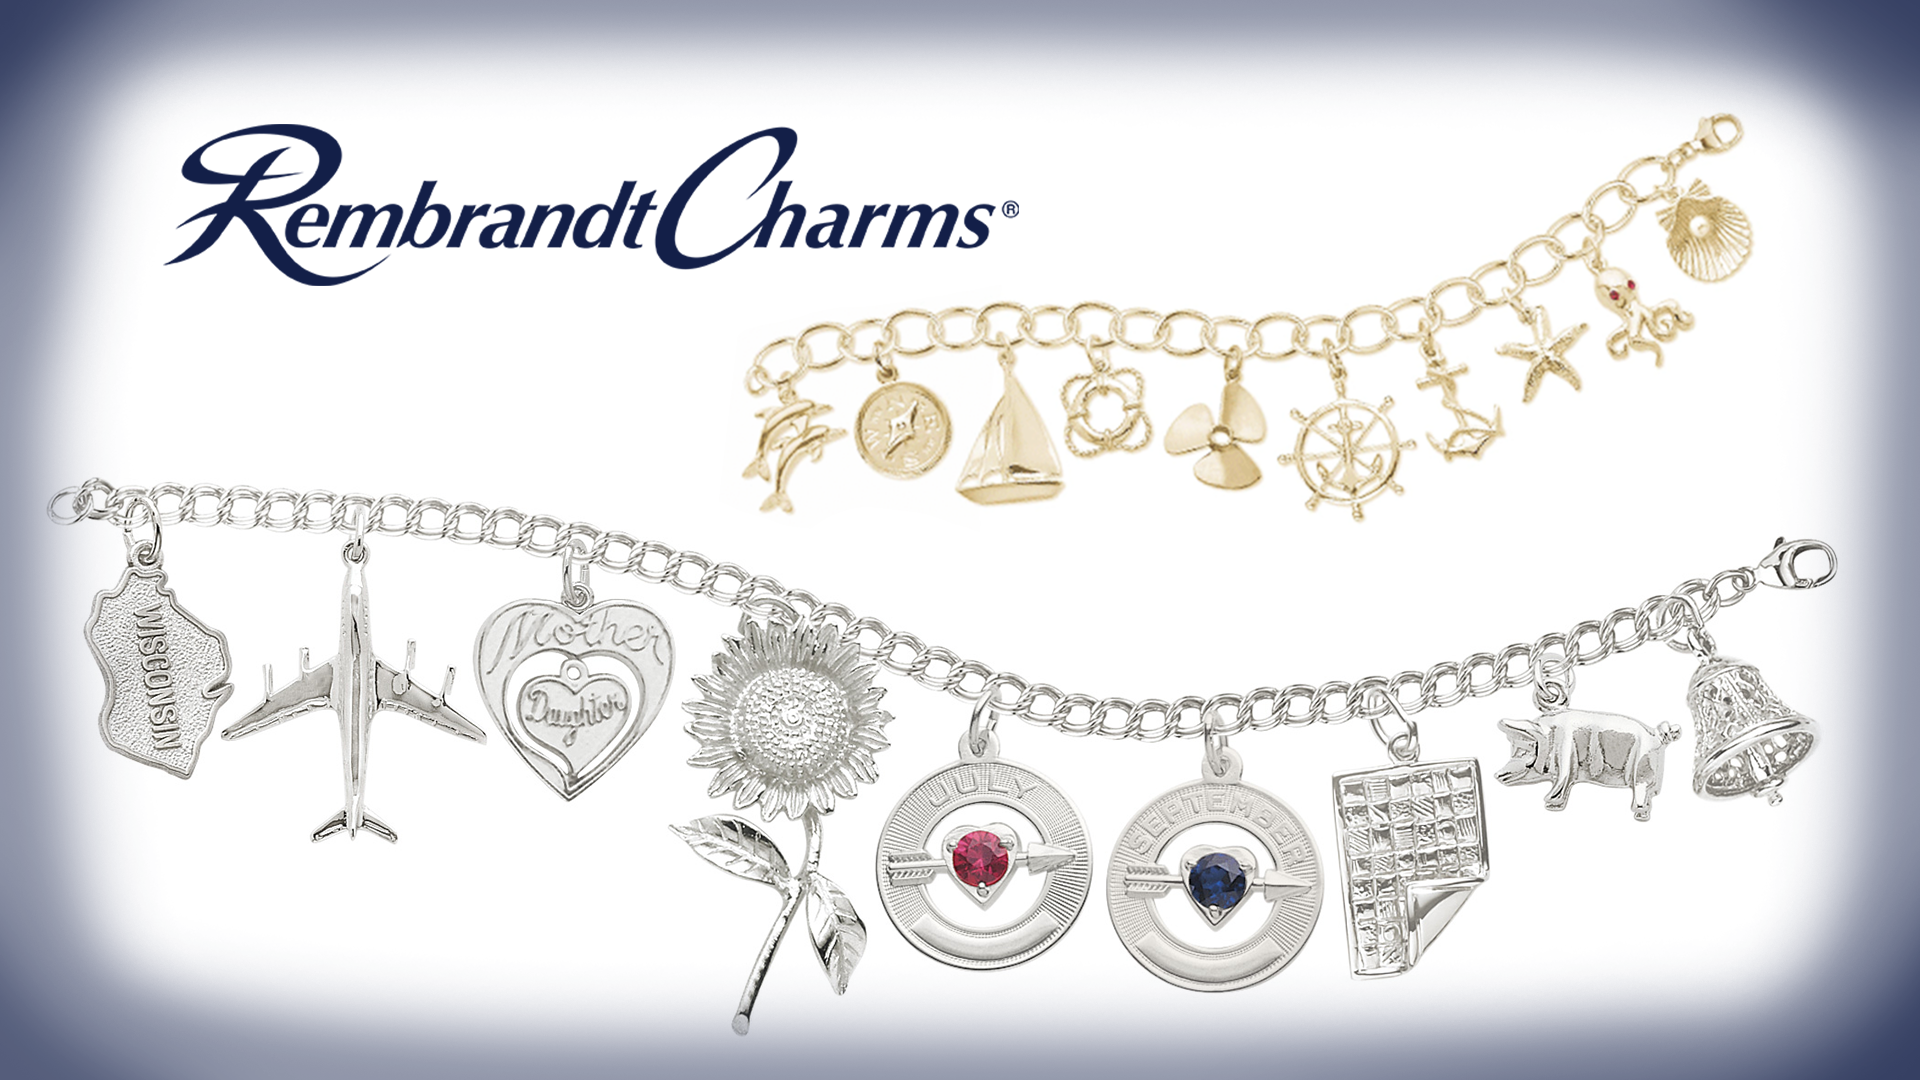 Rembrandt Charms, Jewelry, Fine Jewelry, Charms, Bracelet, Bracelets, Geiss and Sons, Greenville, South Carolina